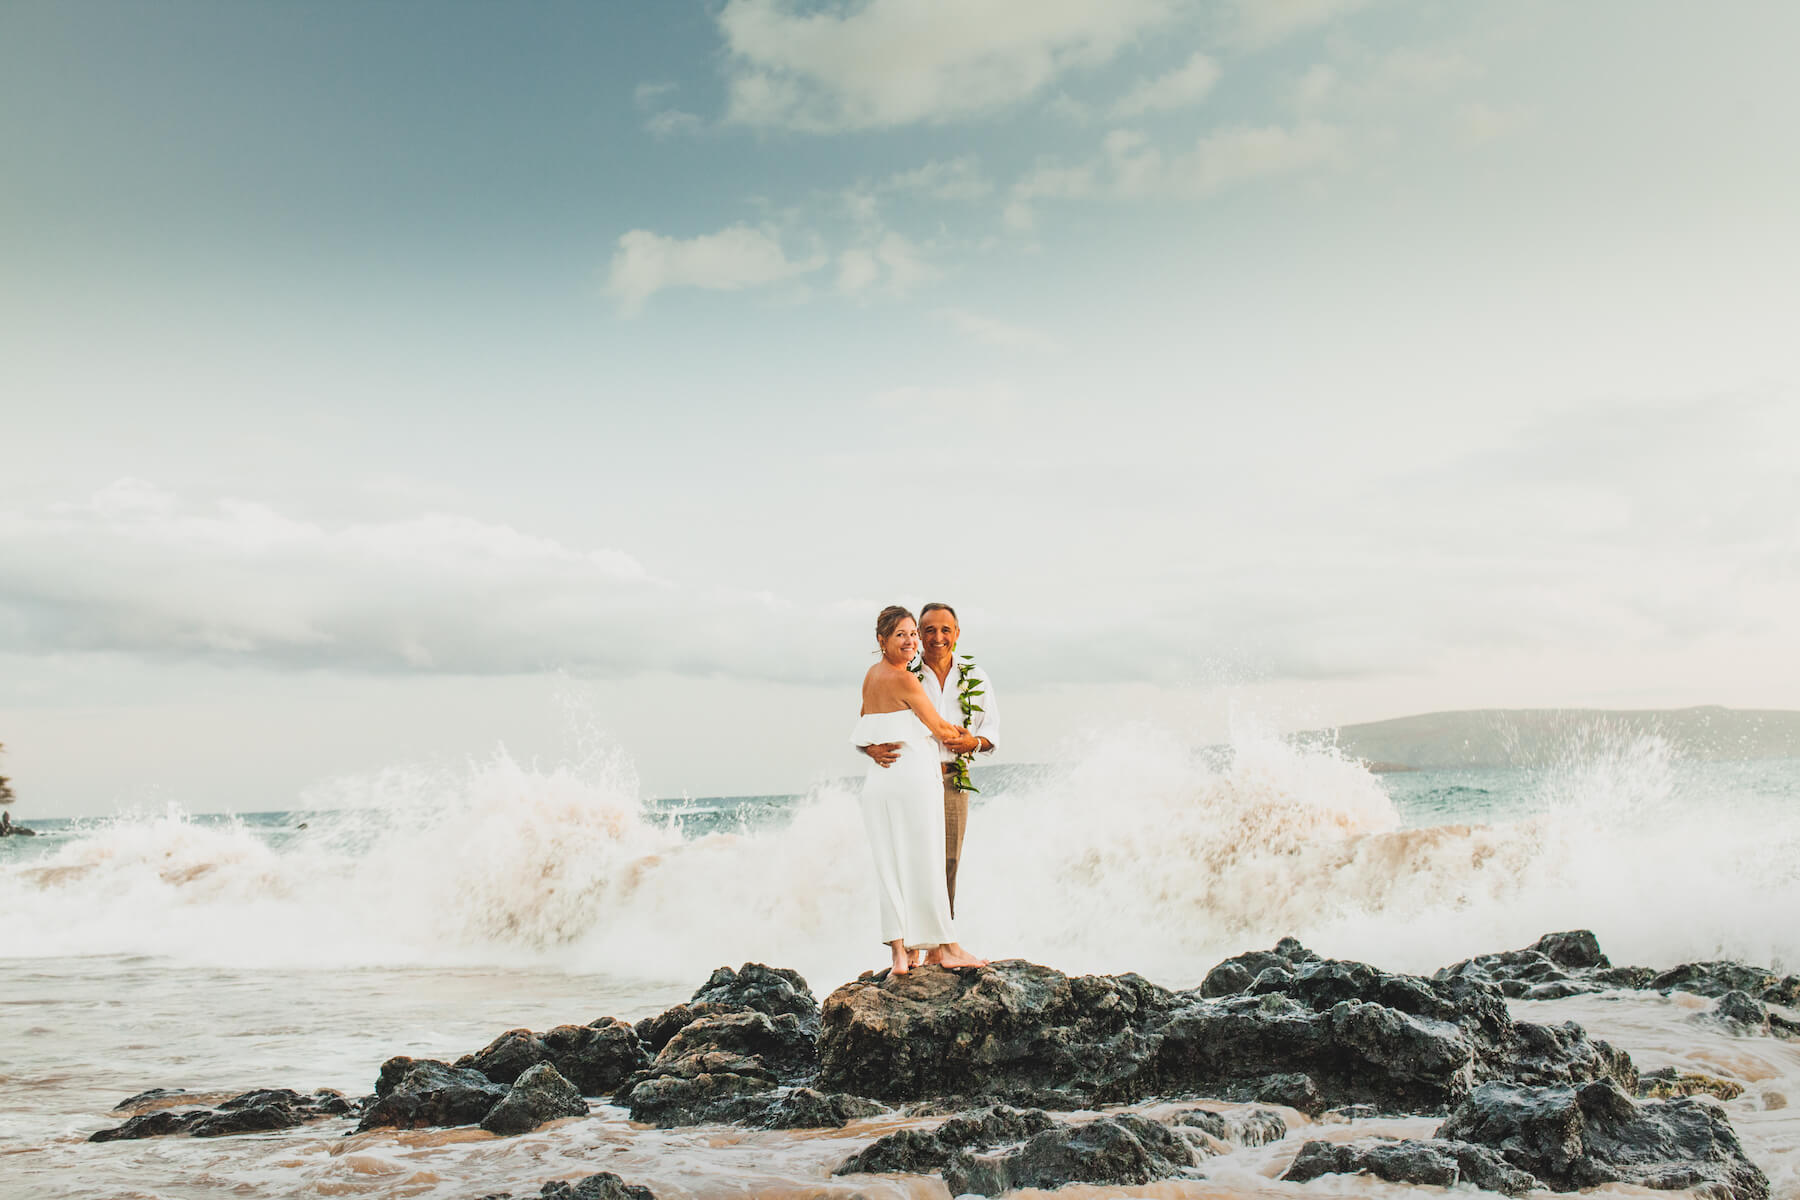 Couples trip in Maui, Hawaii